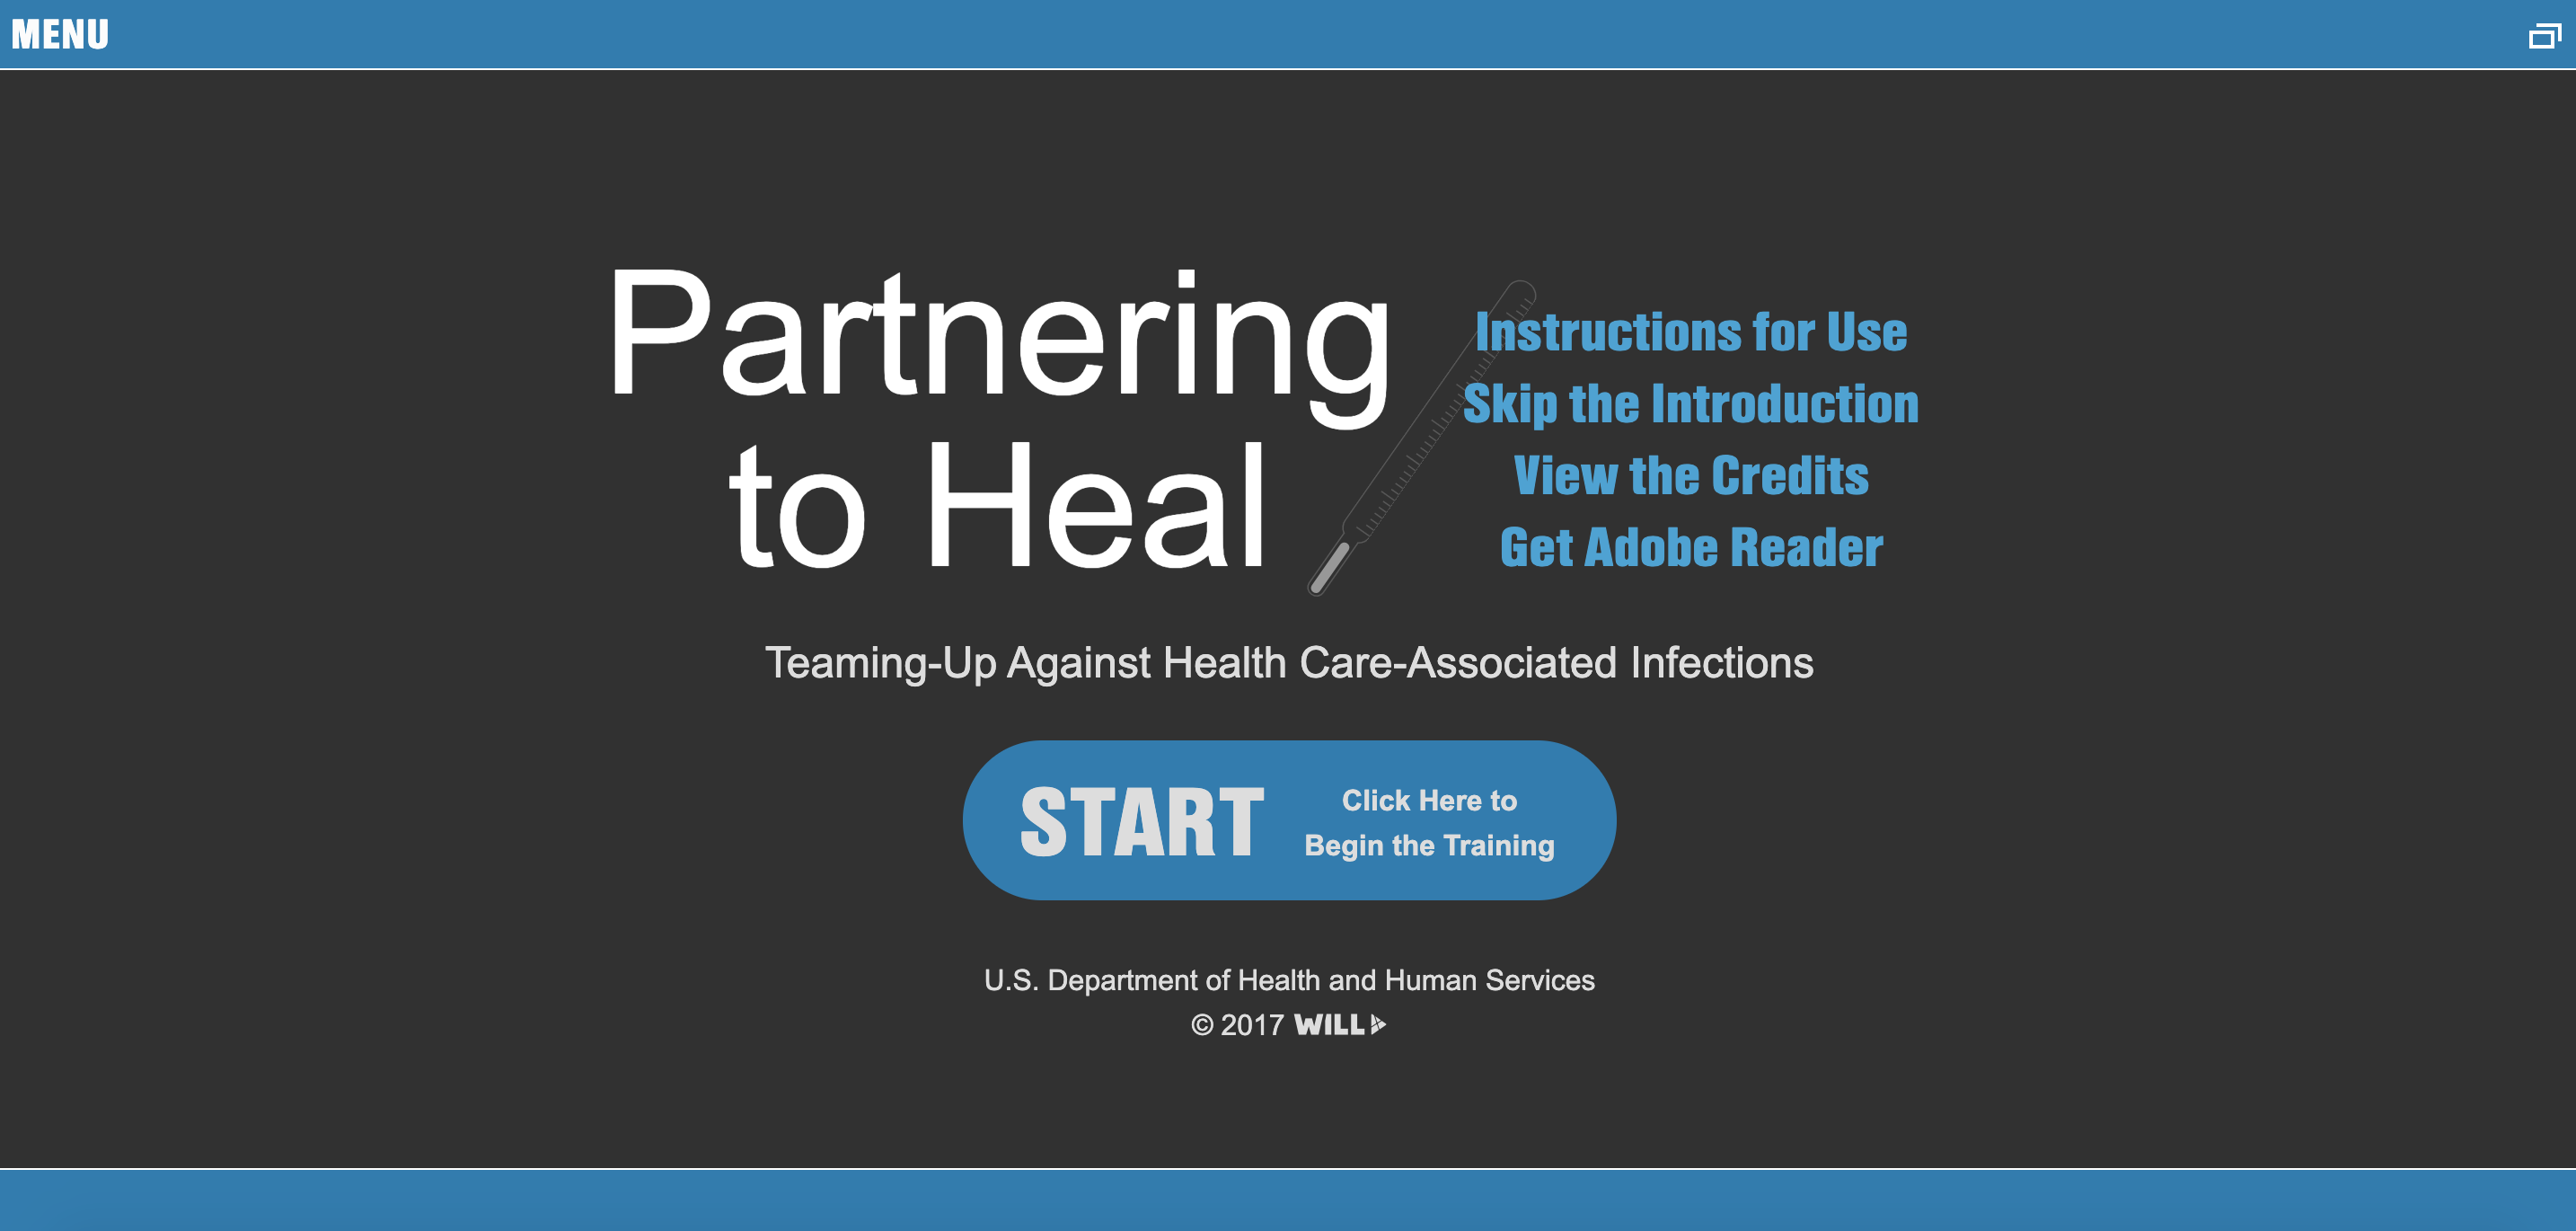 Partnering to Heal: Teaming Up Against Healthcare-Associated InfectionsSource: Partnering to Heal: Teaming Up Against Healthcare-Associated Infections. (n.d.). Retrieved from https://health.gov/hcq/trainings/partnering-to-heal/index.html